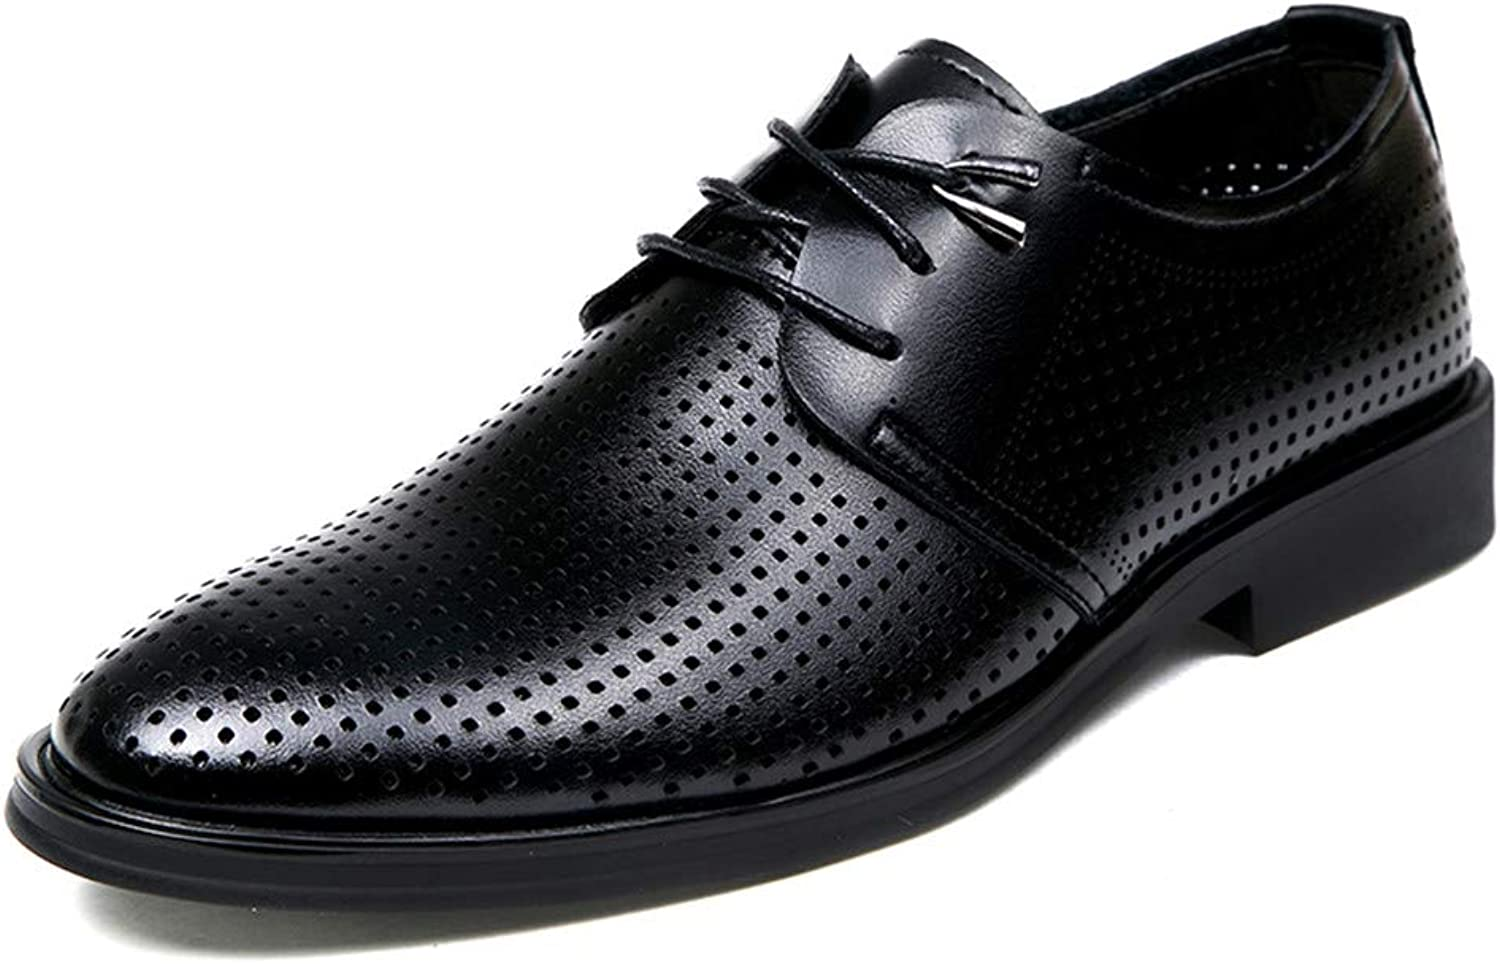 JIALUN-shoes Men's Simple Business Oxford Casual Classic Fashion Comfortable Hollow Out Breathable Formal shoes